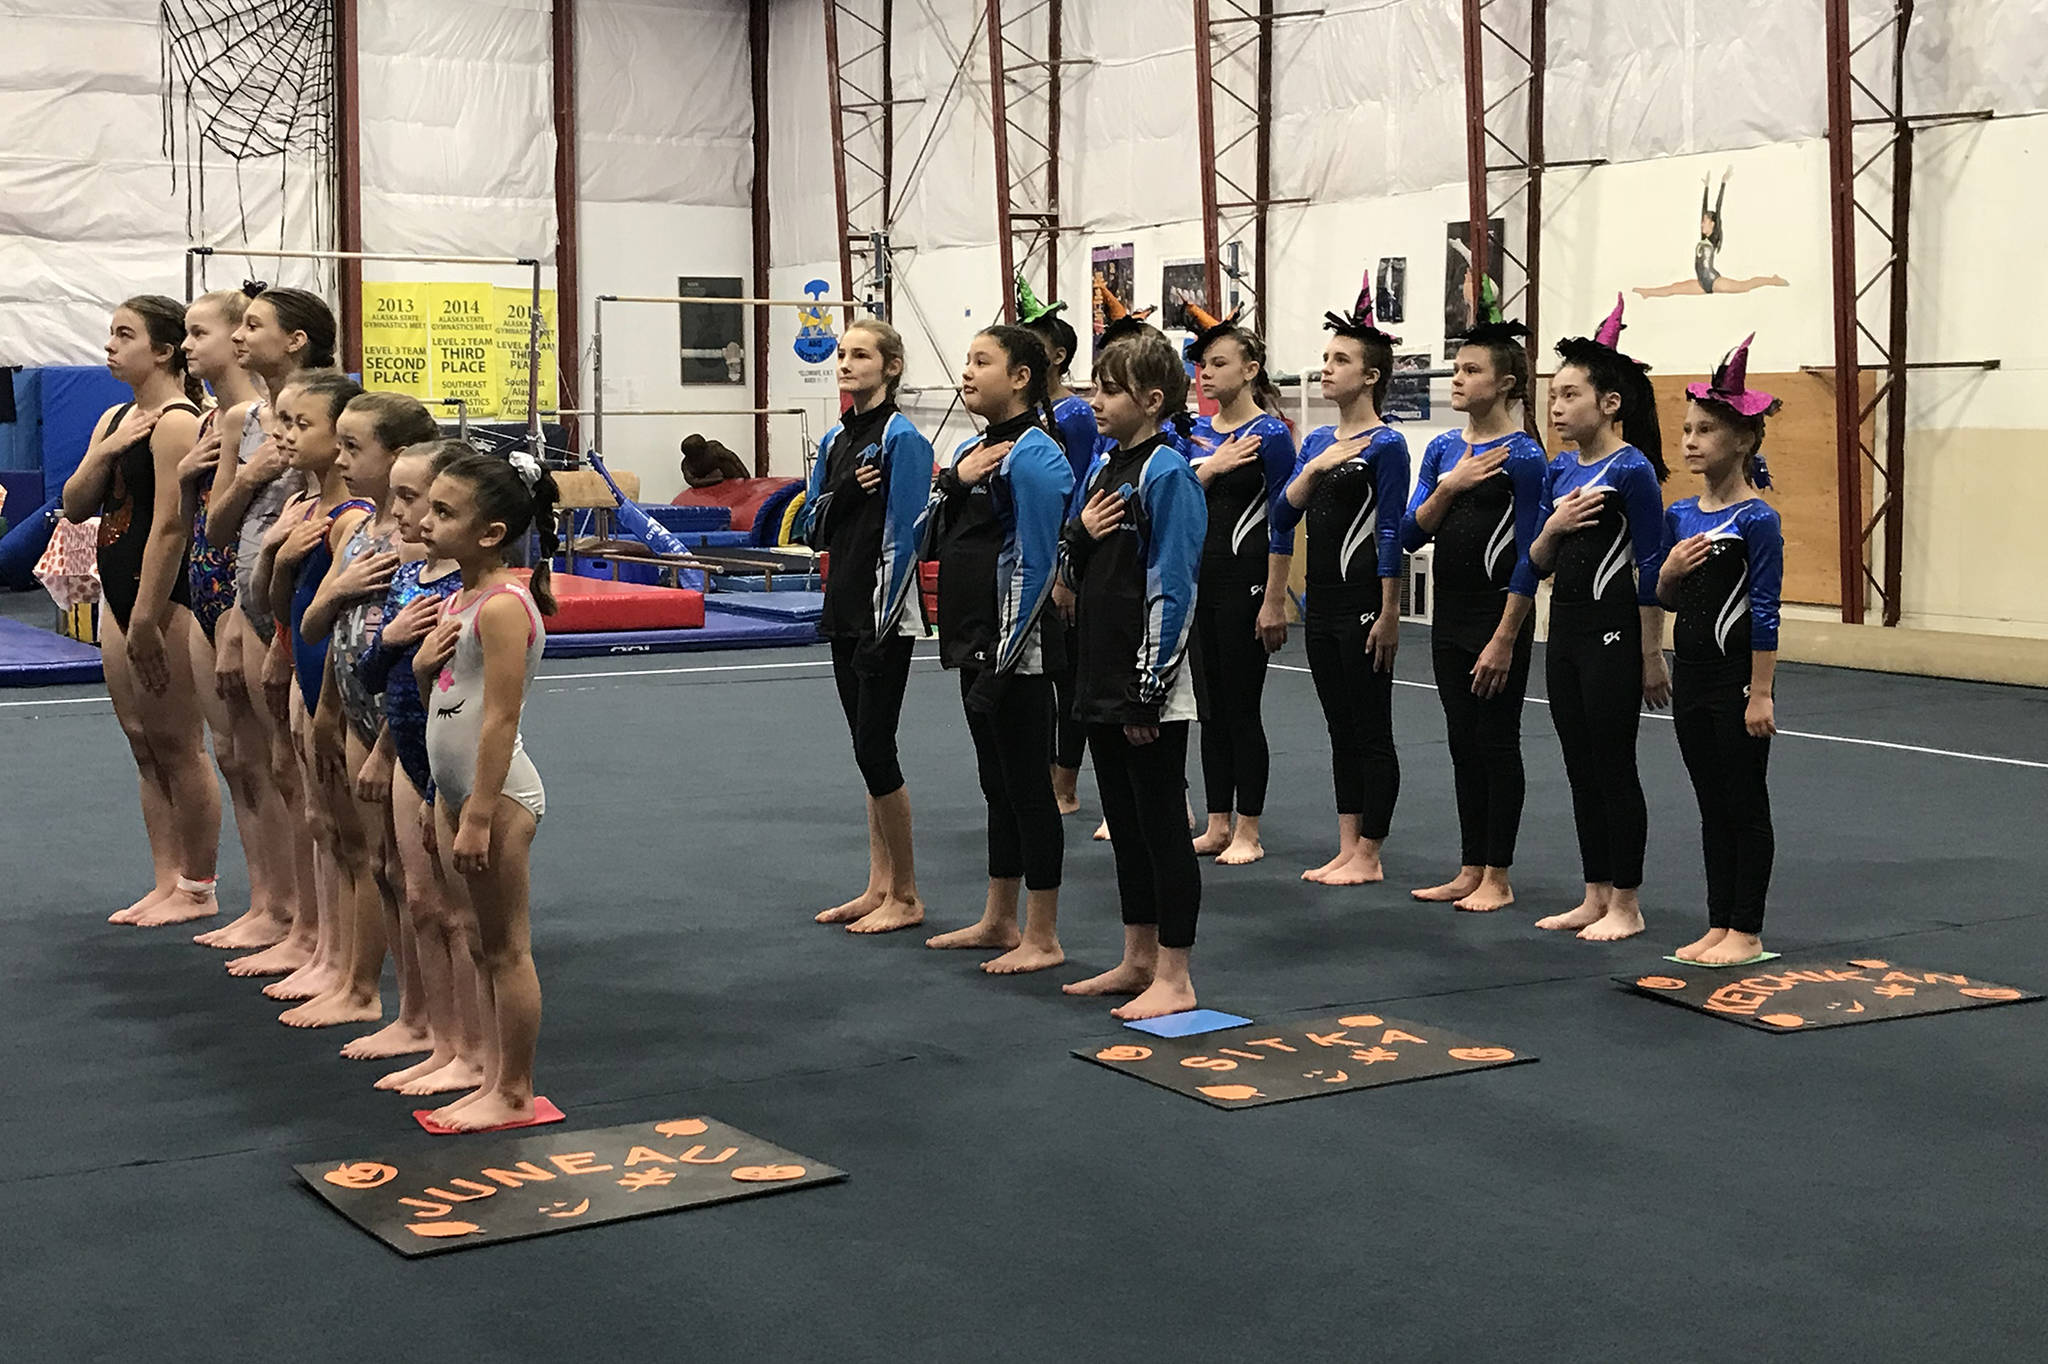 "Southeast teams from Juneau, left, Sitka, center, and Ketchikan, right, stand for the national anthem at the start of the ""Halloween Classic"" gymnastics meet on Saturday morning at the Southeast Alaska Gymnastics Academy in the Mendenhall Valley. The USA Gymnastics-sanctioned meet included 50 gymnasts competing on all four girls' events: vault, uneven bars, balance beam and floor exercise, and in the all around. Juneau's Kristie Kulbeth, Skylar Oliva and Megan Lujan ranked first in their respective age classes and divisions. (Courtesy Photo 